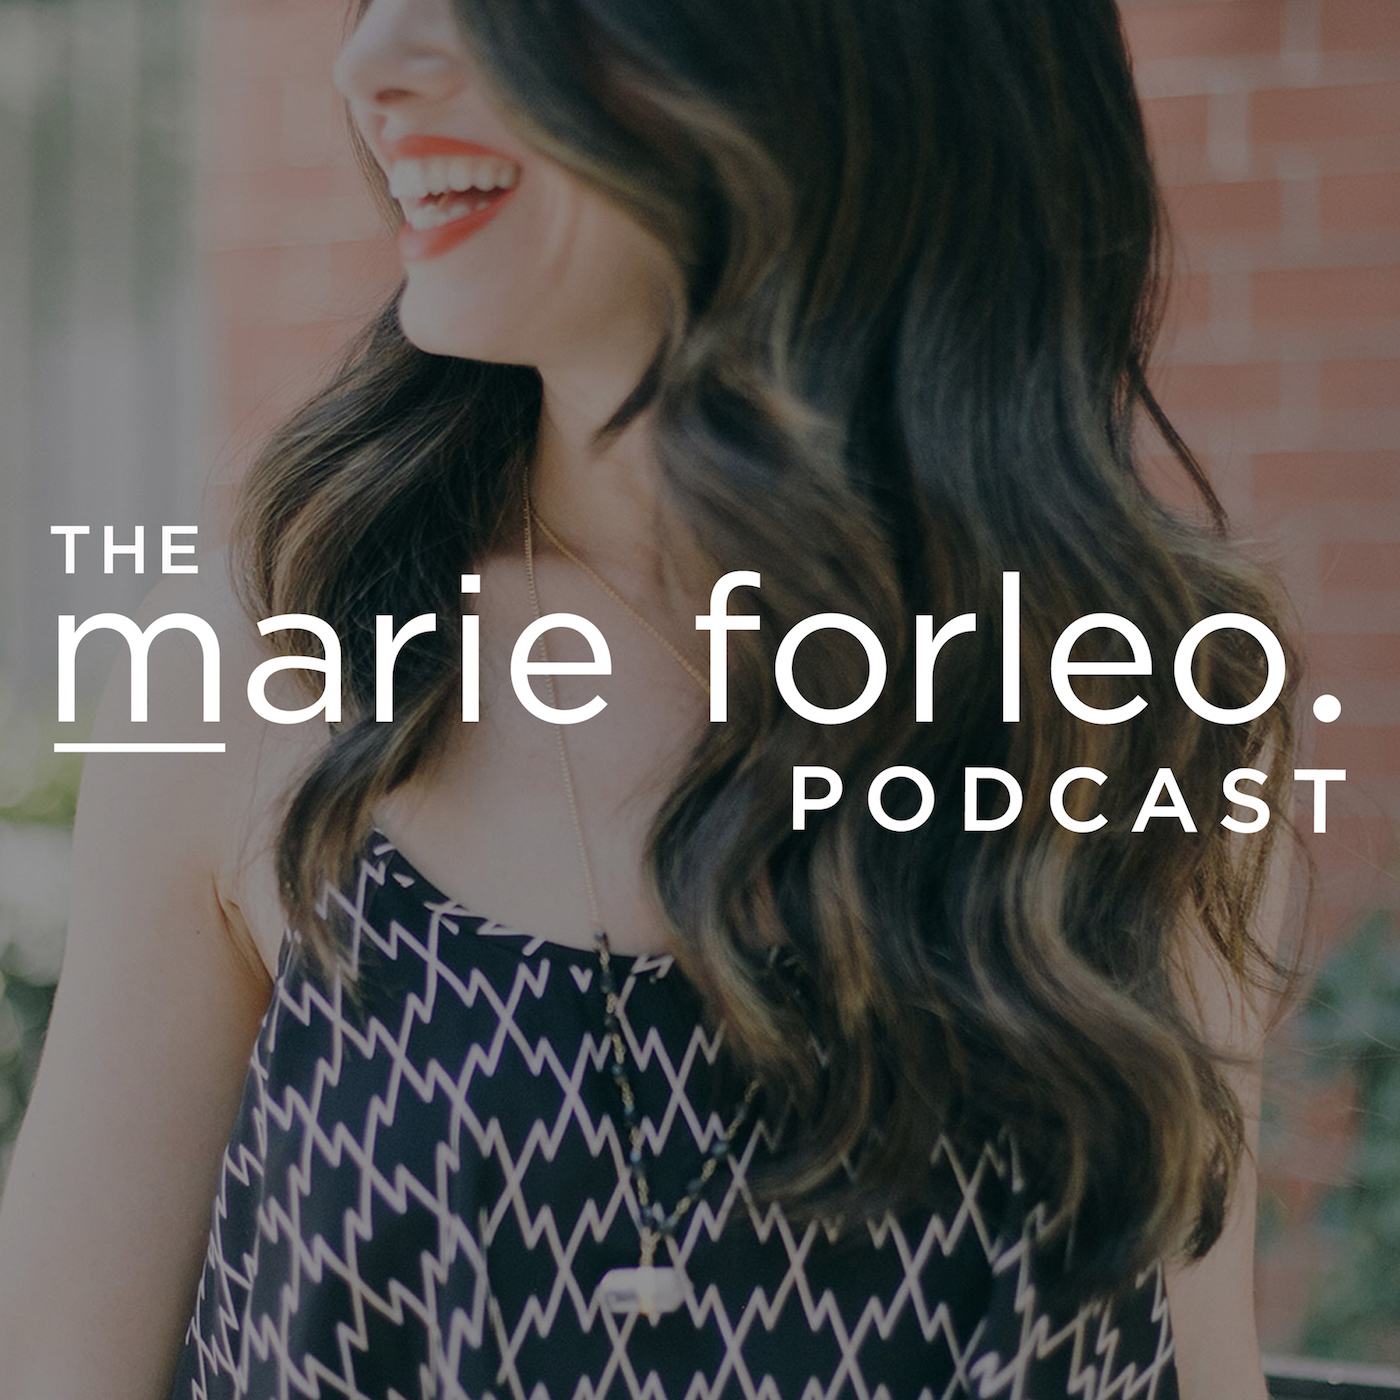 the marie forleo podcast.jpg